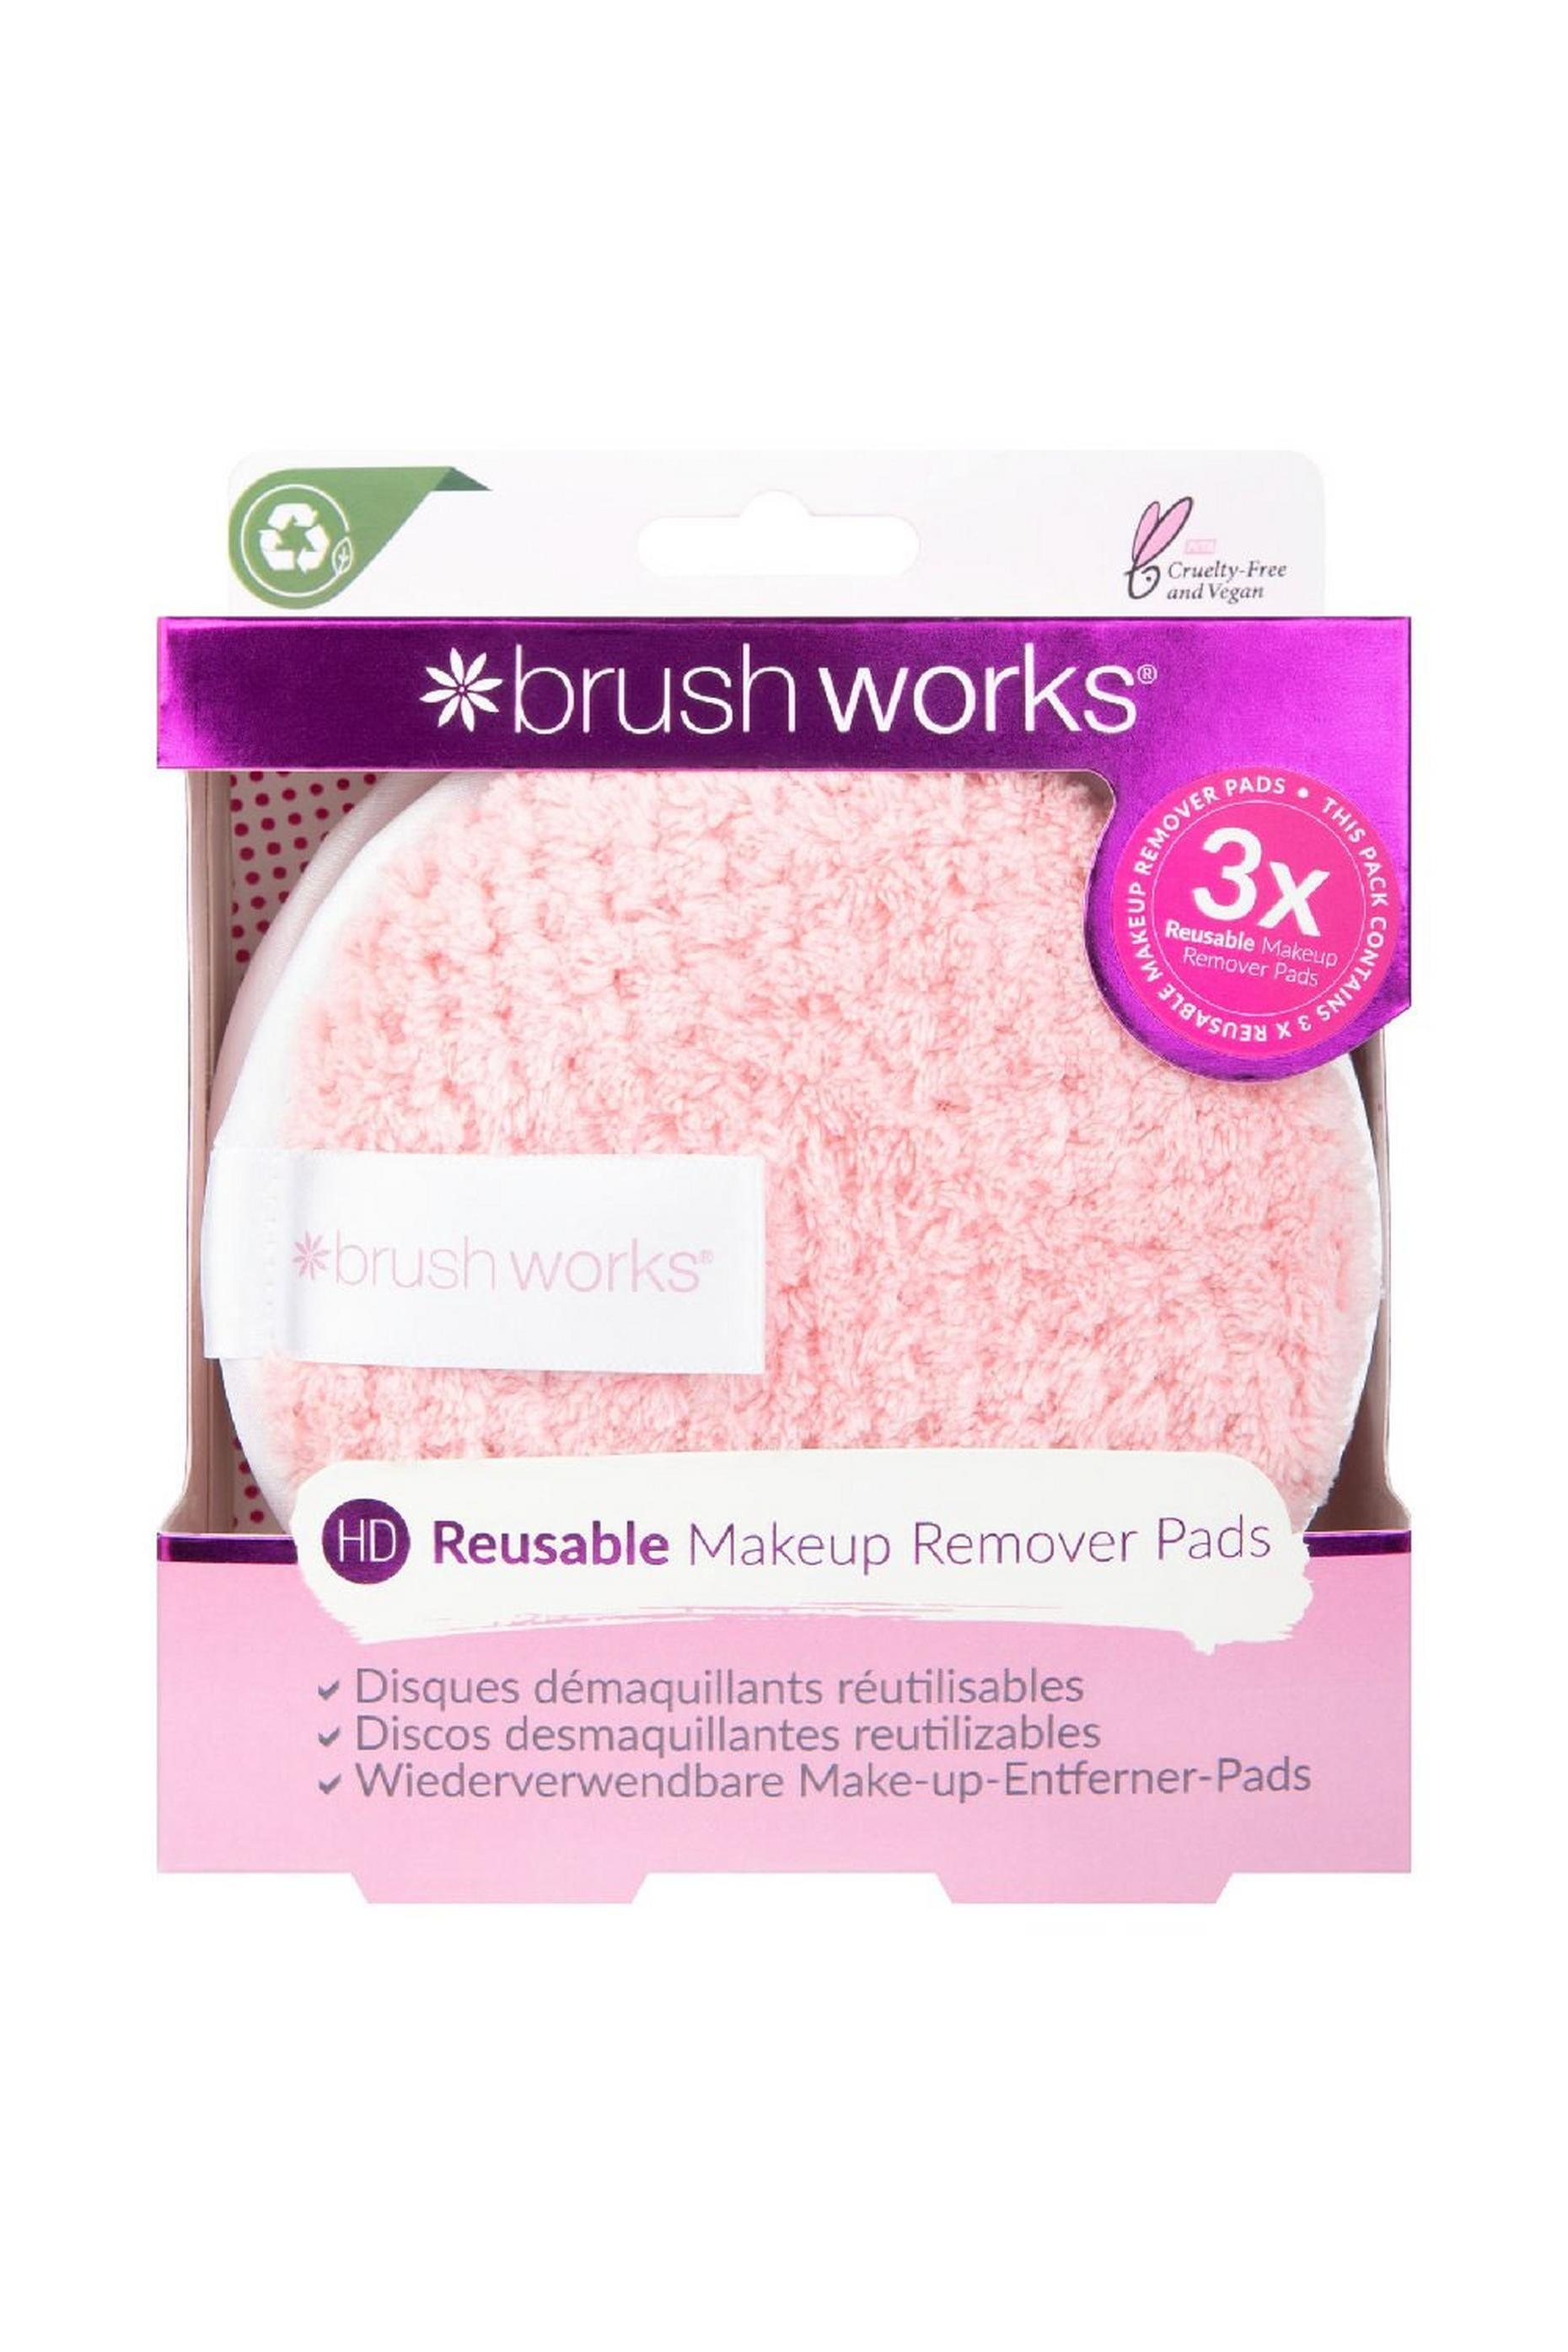 Brushworks Hd Reusable Makeup Remover Pads